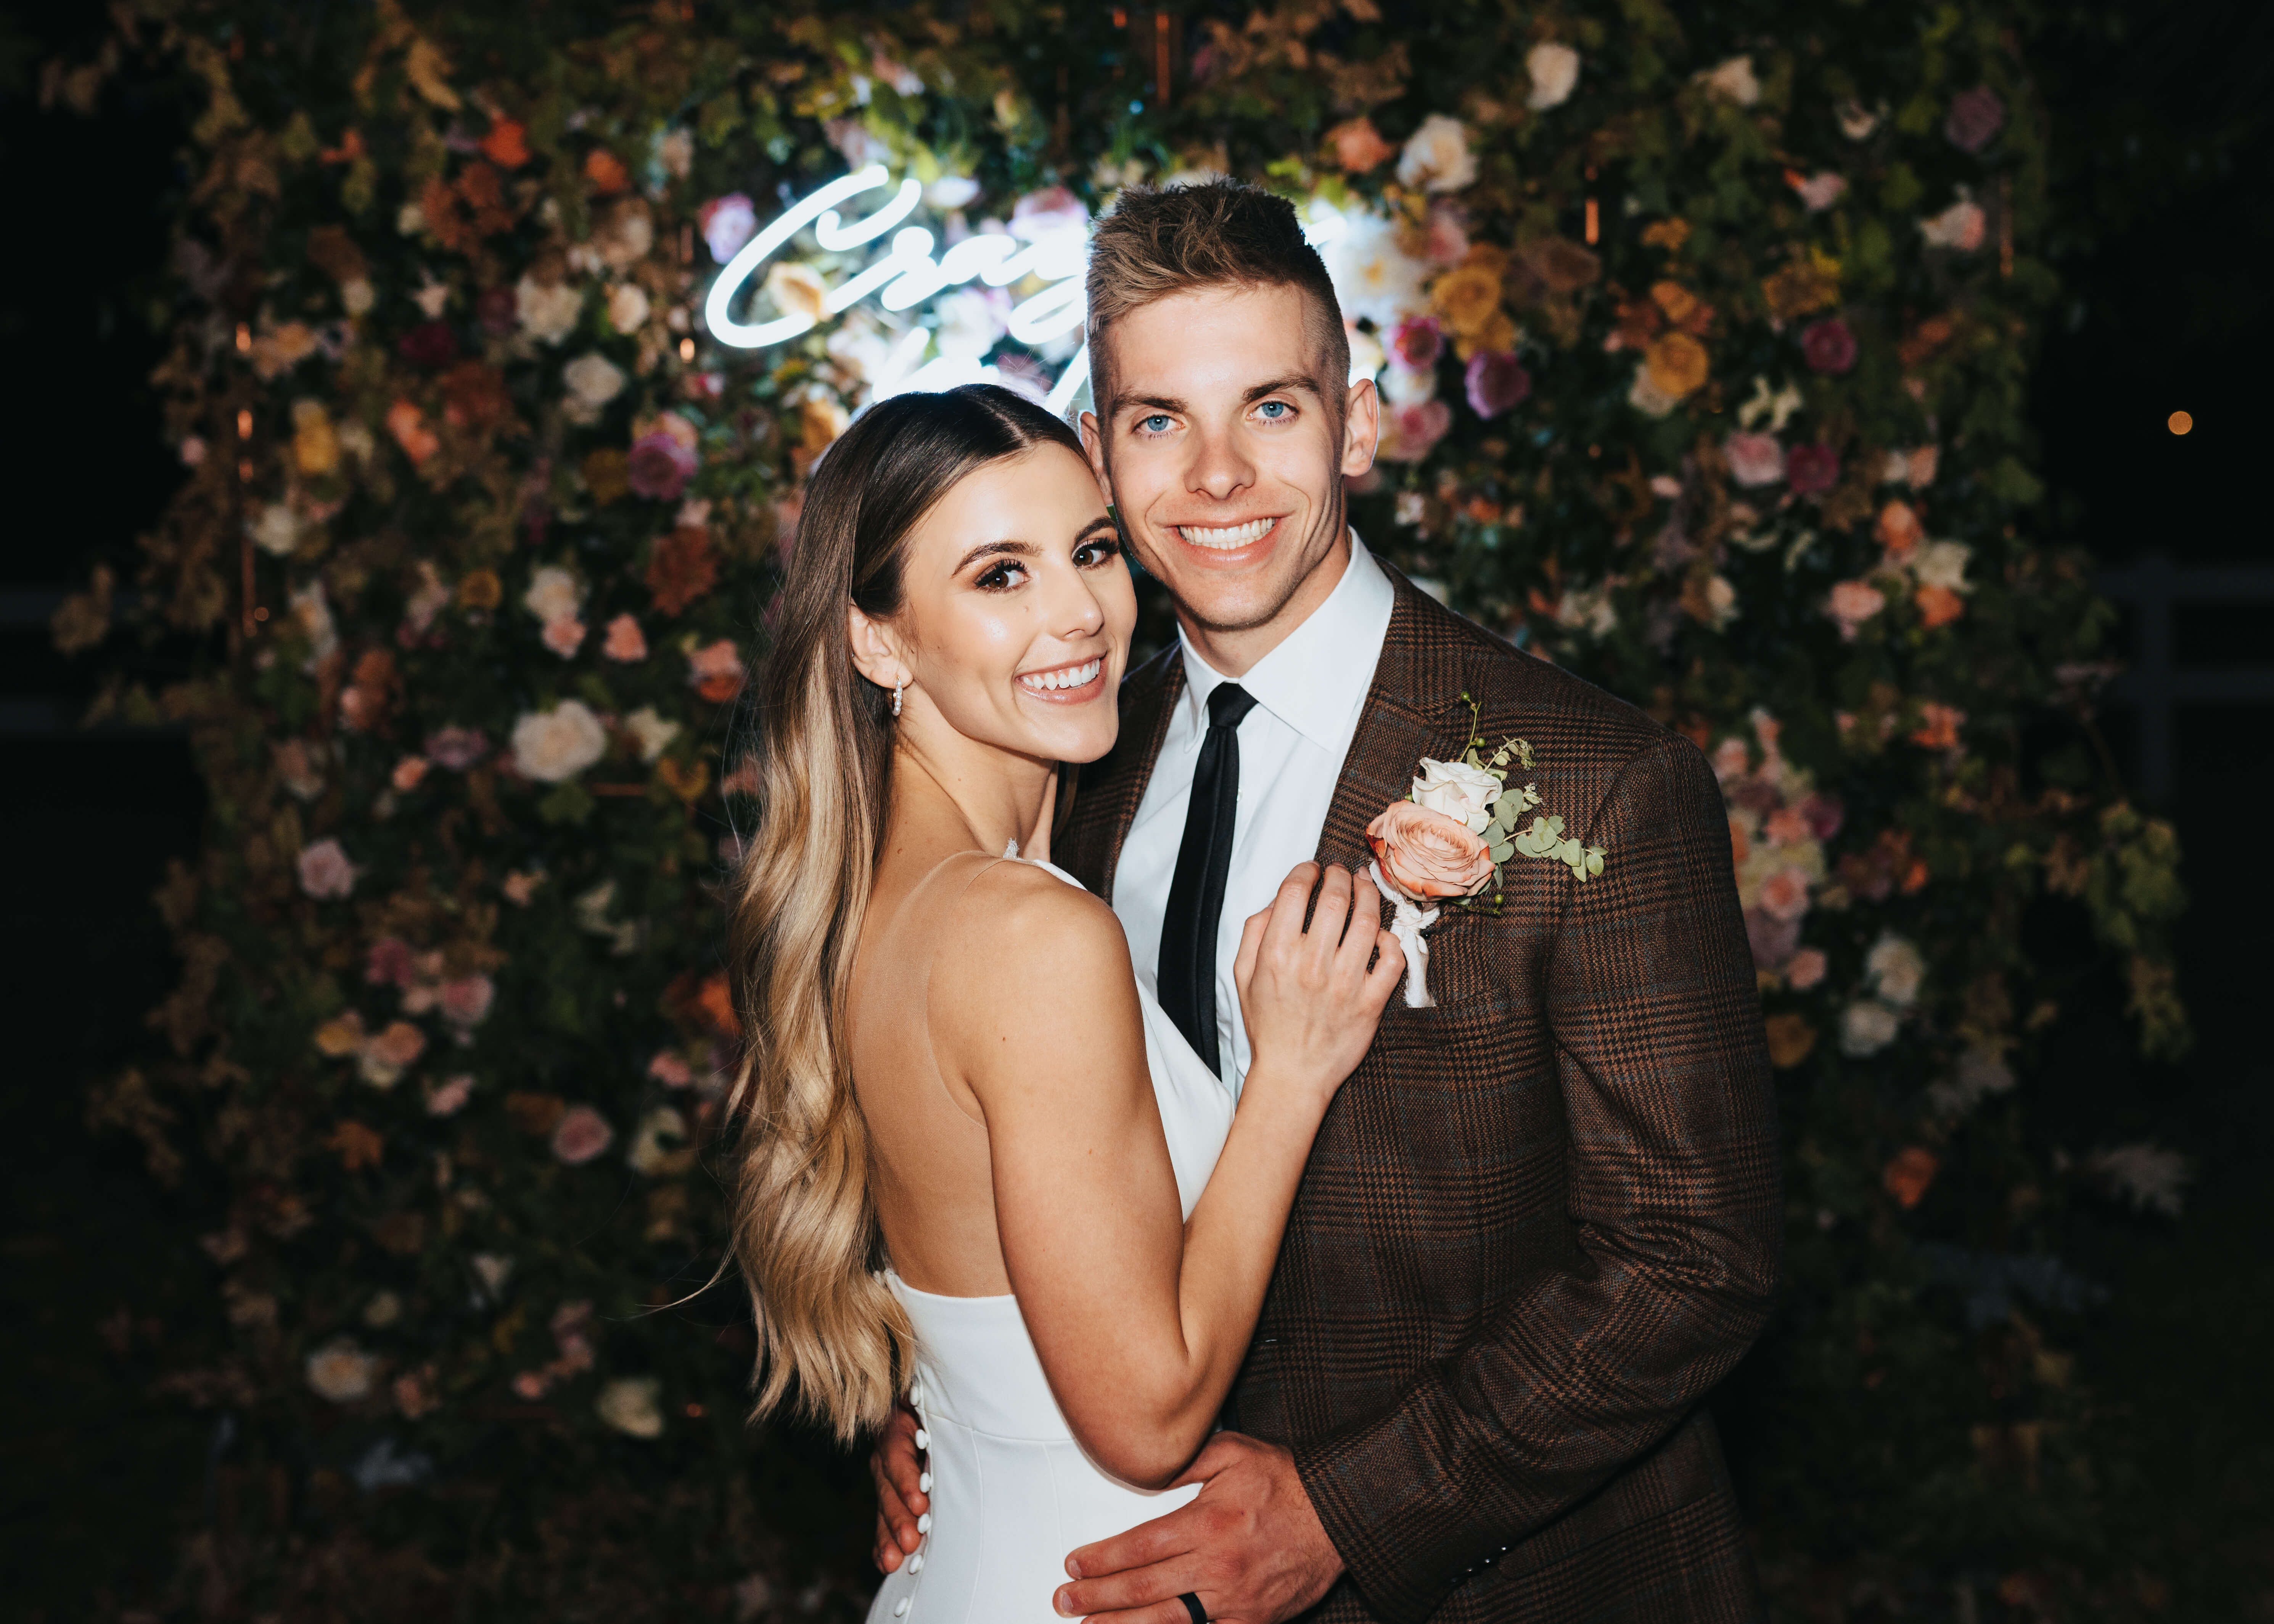 neon sign wedding idea couple in front of floral wall